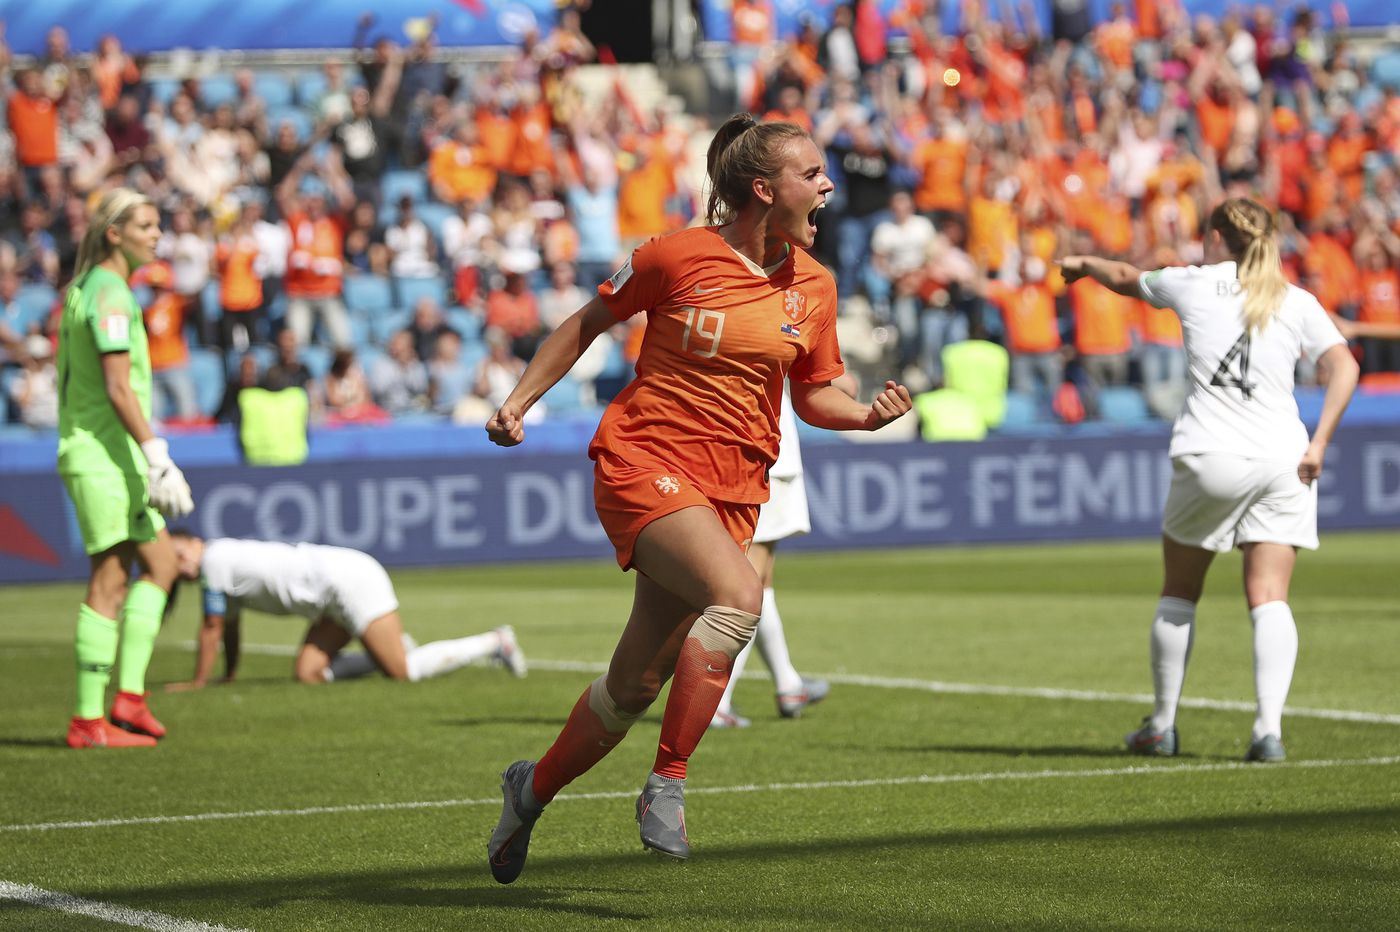 Netherlands edges New Zealand 1-0 at Women's World Cup on stoppage time goal